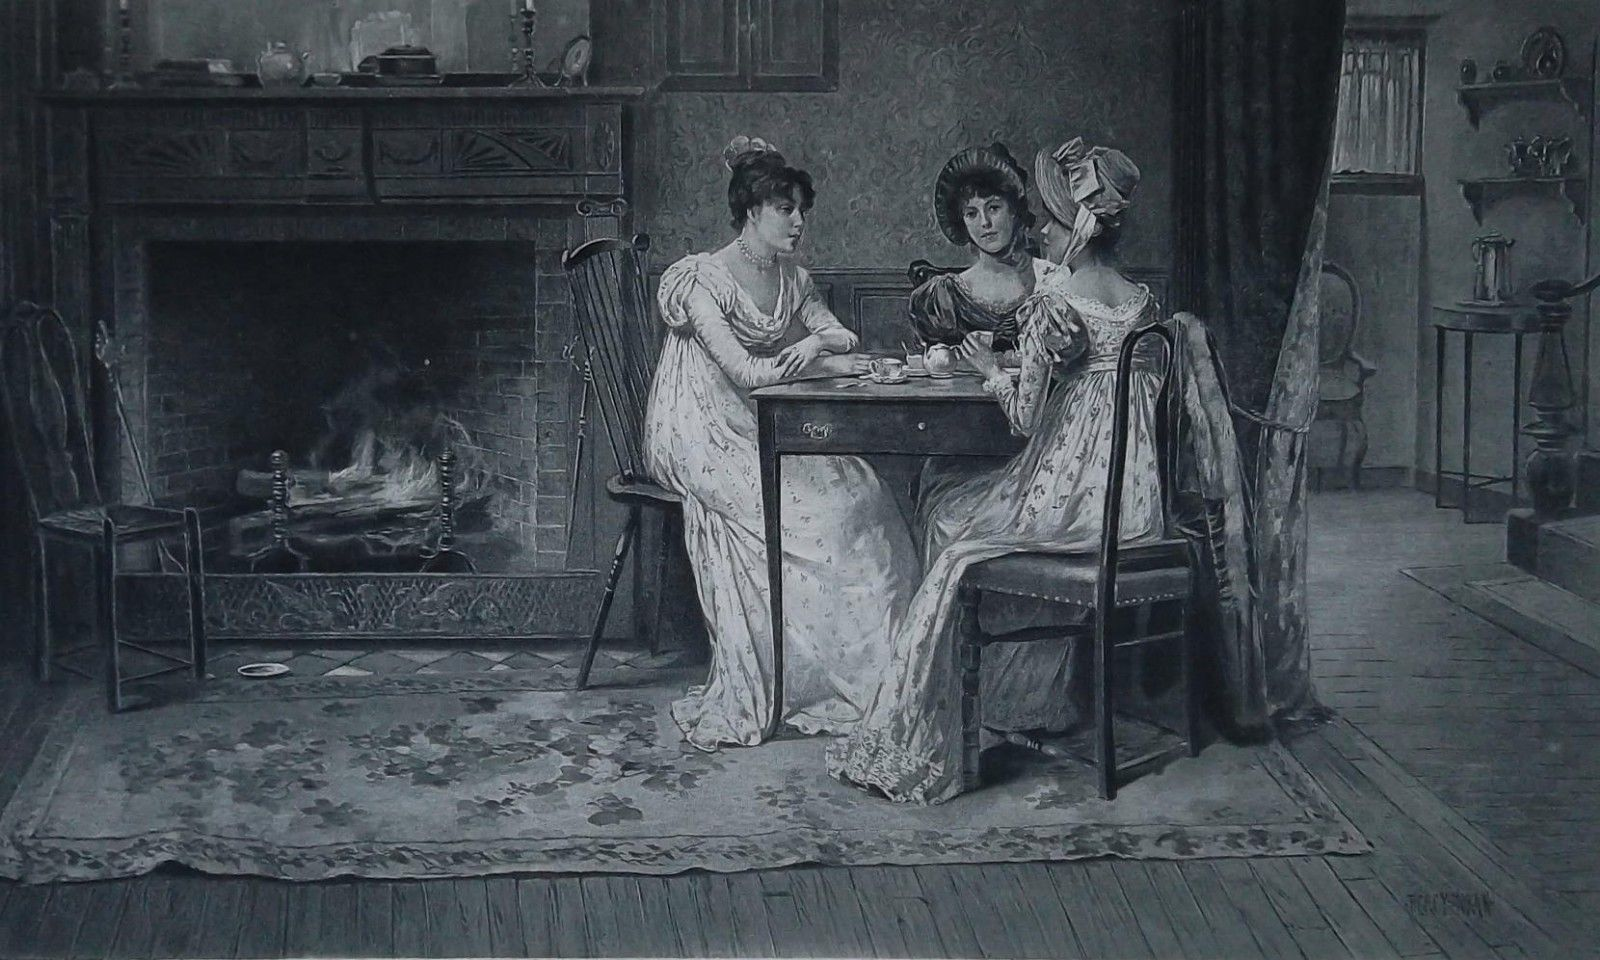 VICTORIAN LADIES Gossip at Fireplace - 1888 Photogravure Print image 1